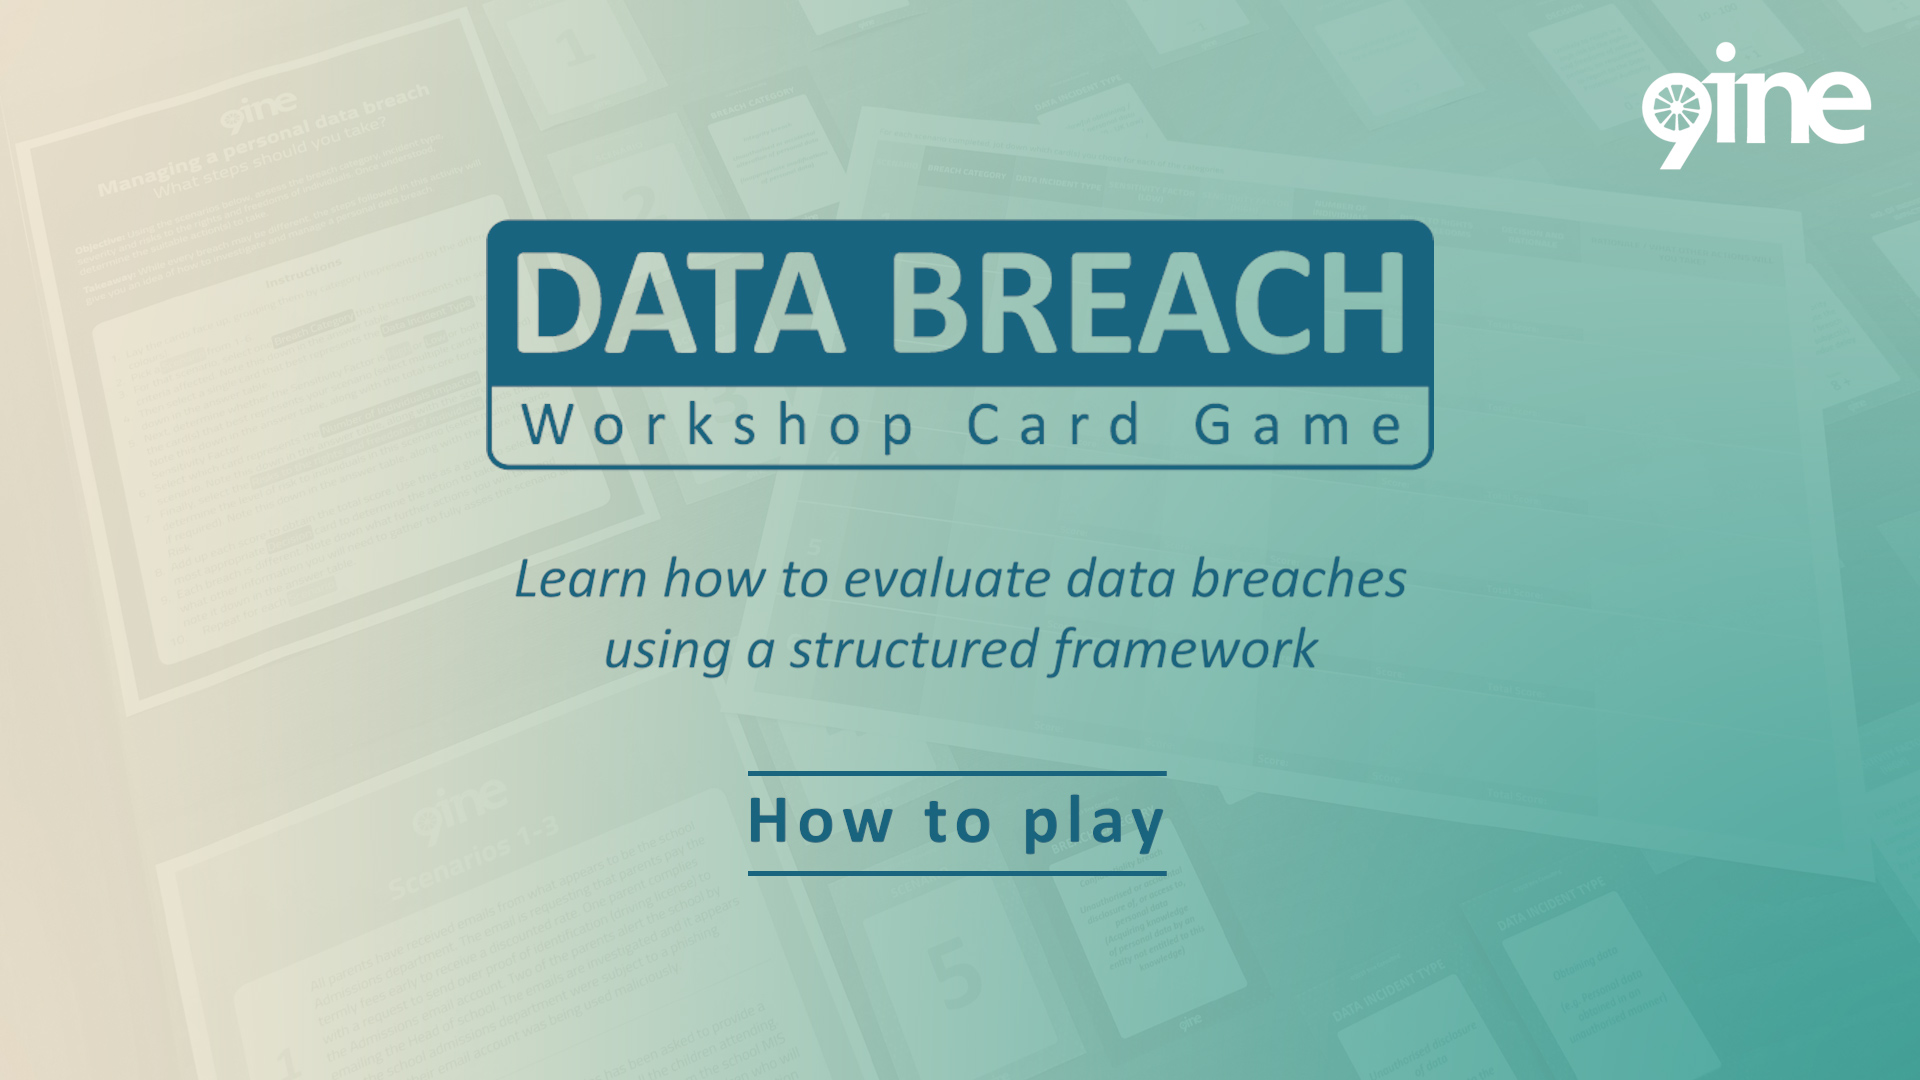 9ine_Data Breach Workshop Card Game_How to Play_POST